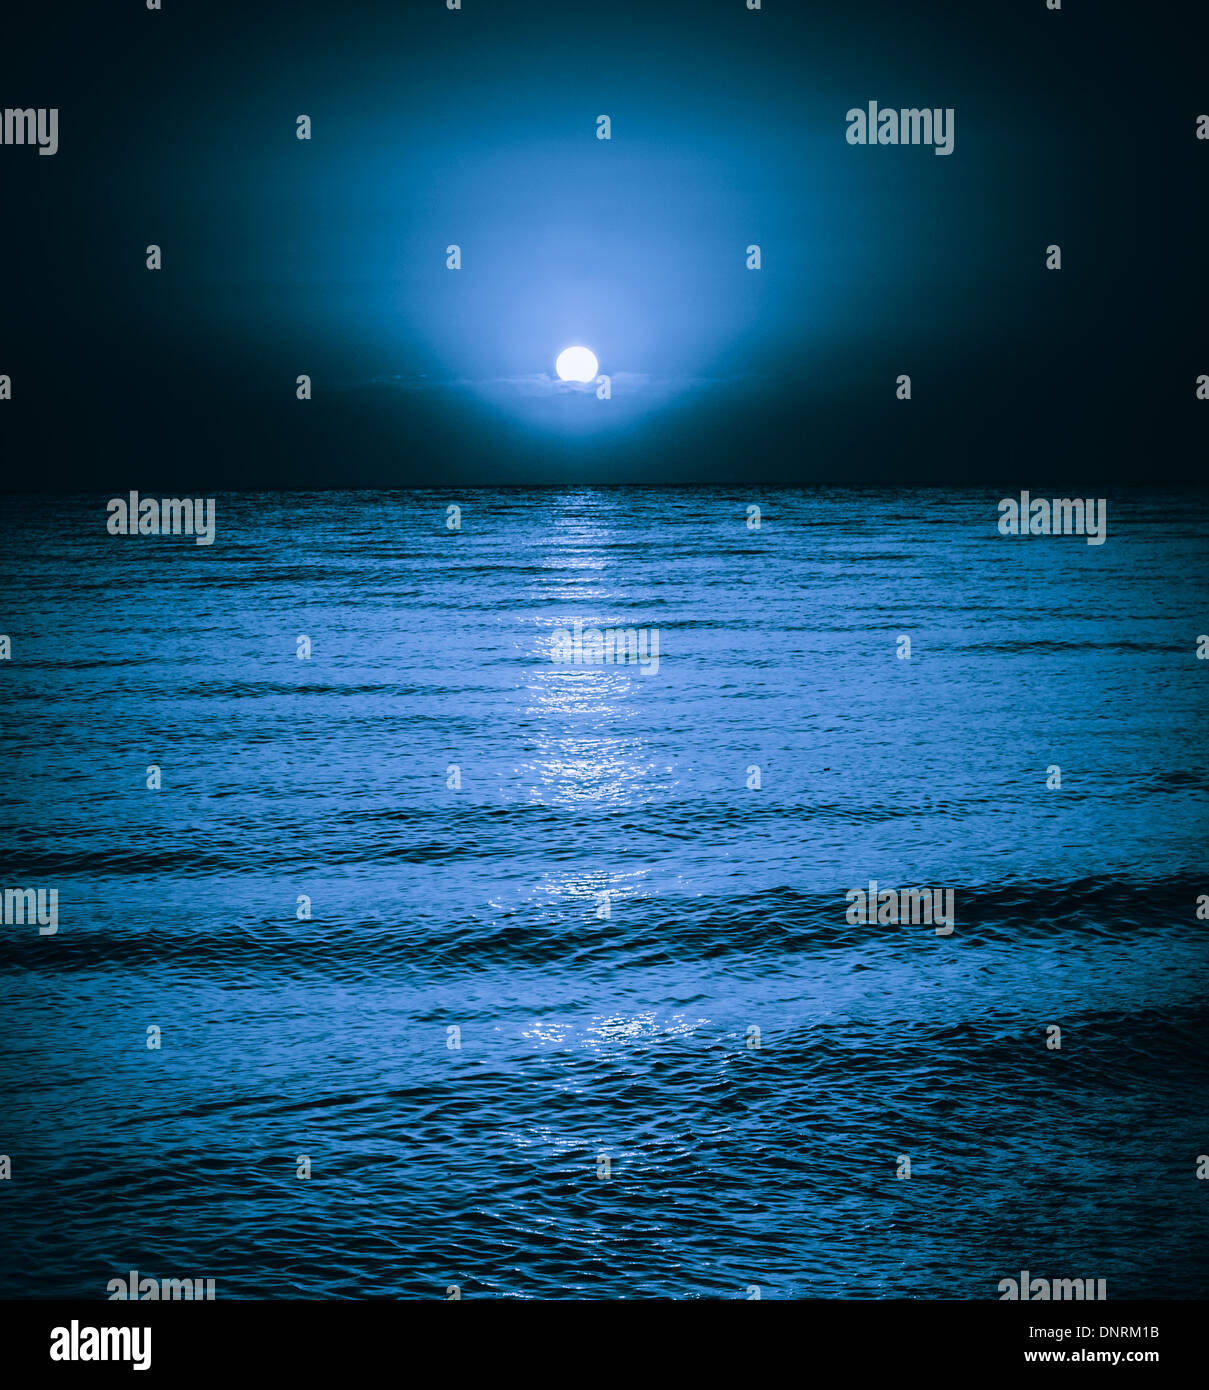 Large Moon Reflecting Over Smooth Waves On Water Stock ...   Full Moon Reflecting Off Water